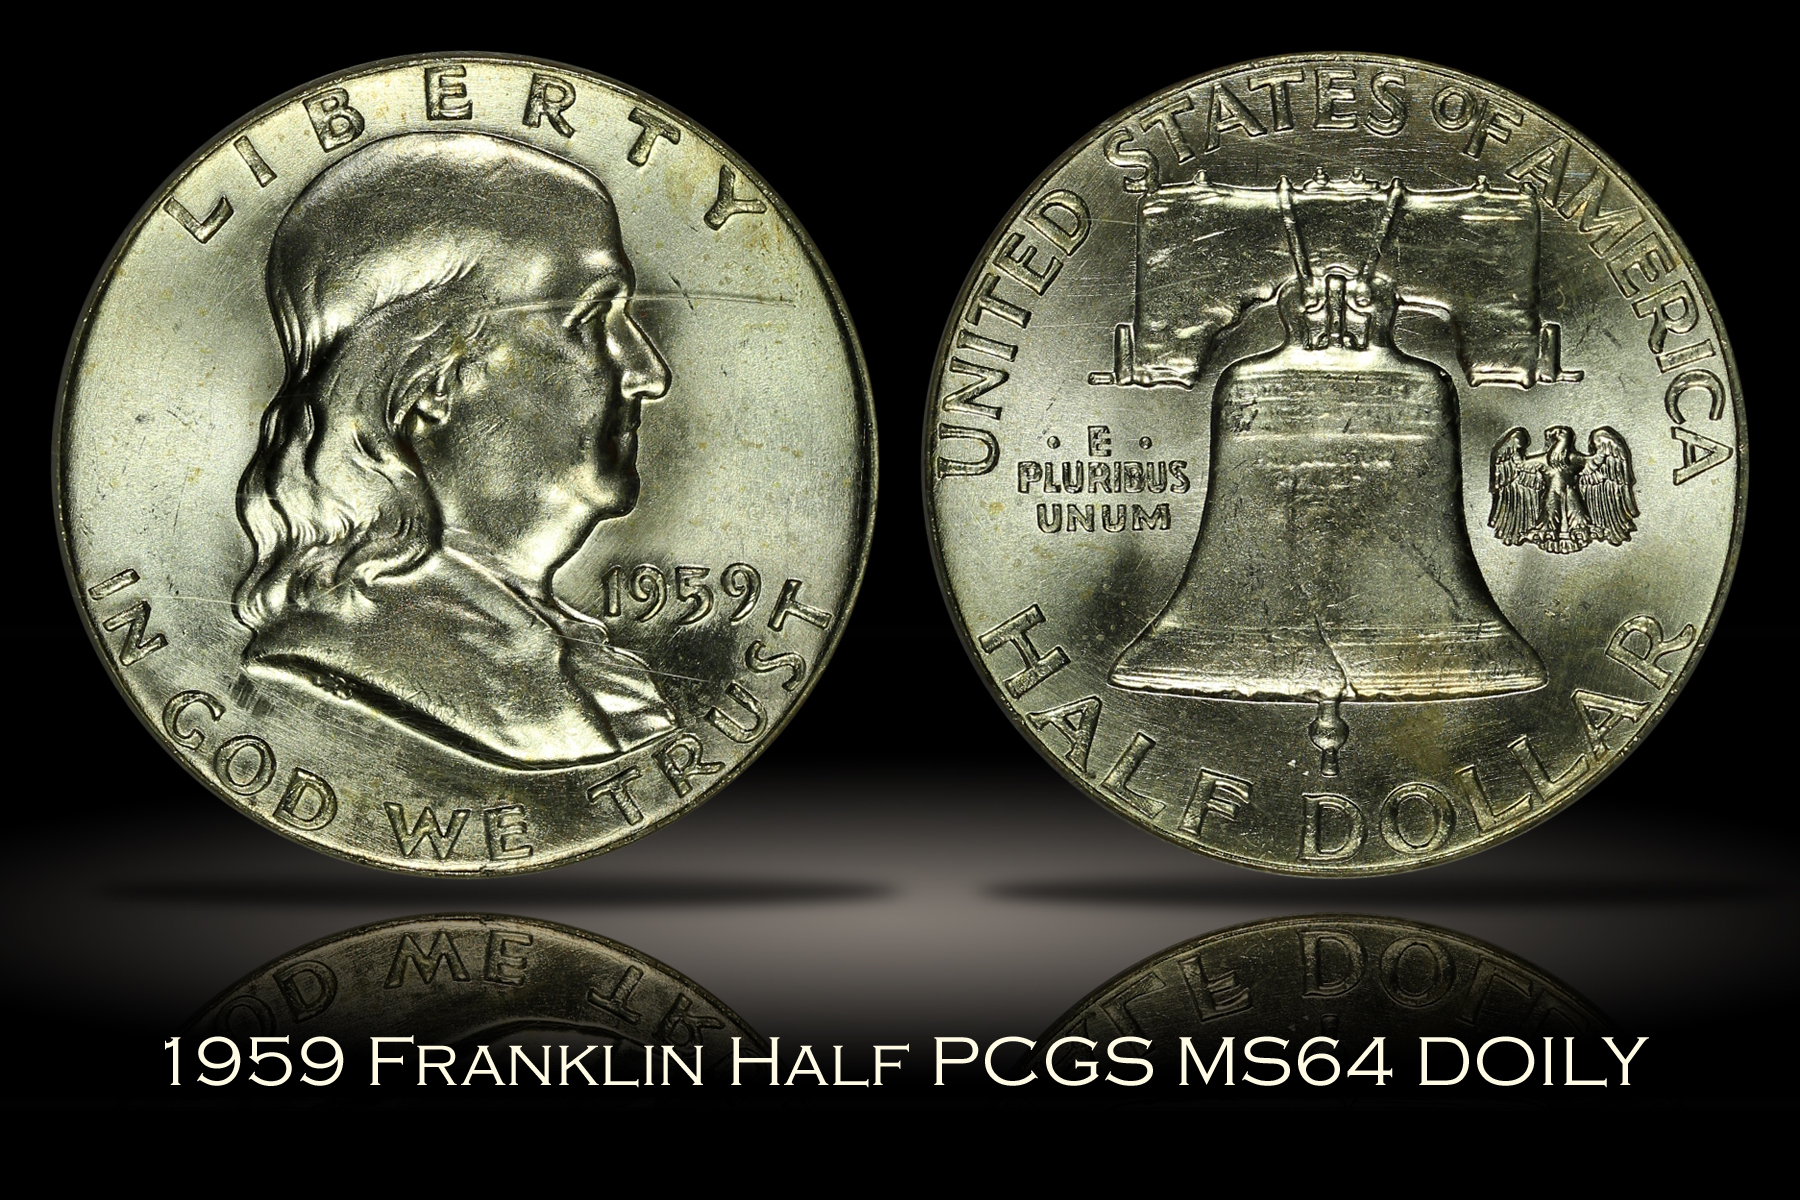 1959 Franklin Half PCGS MS64 DOILY